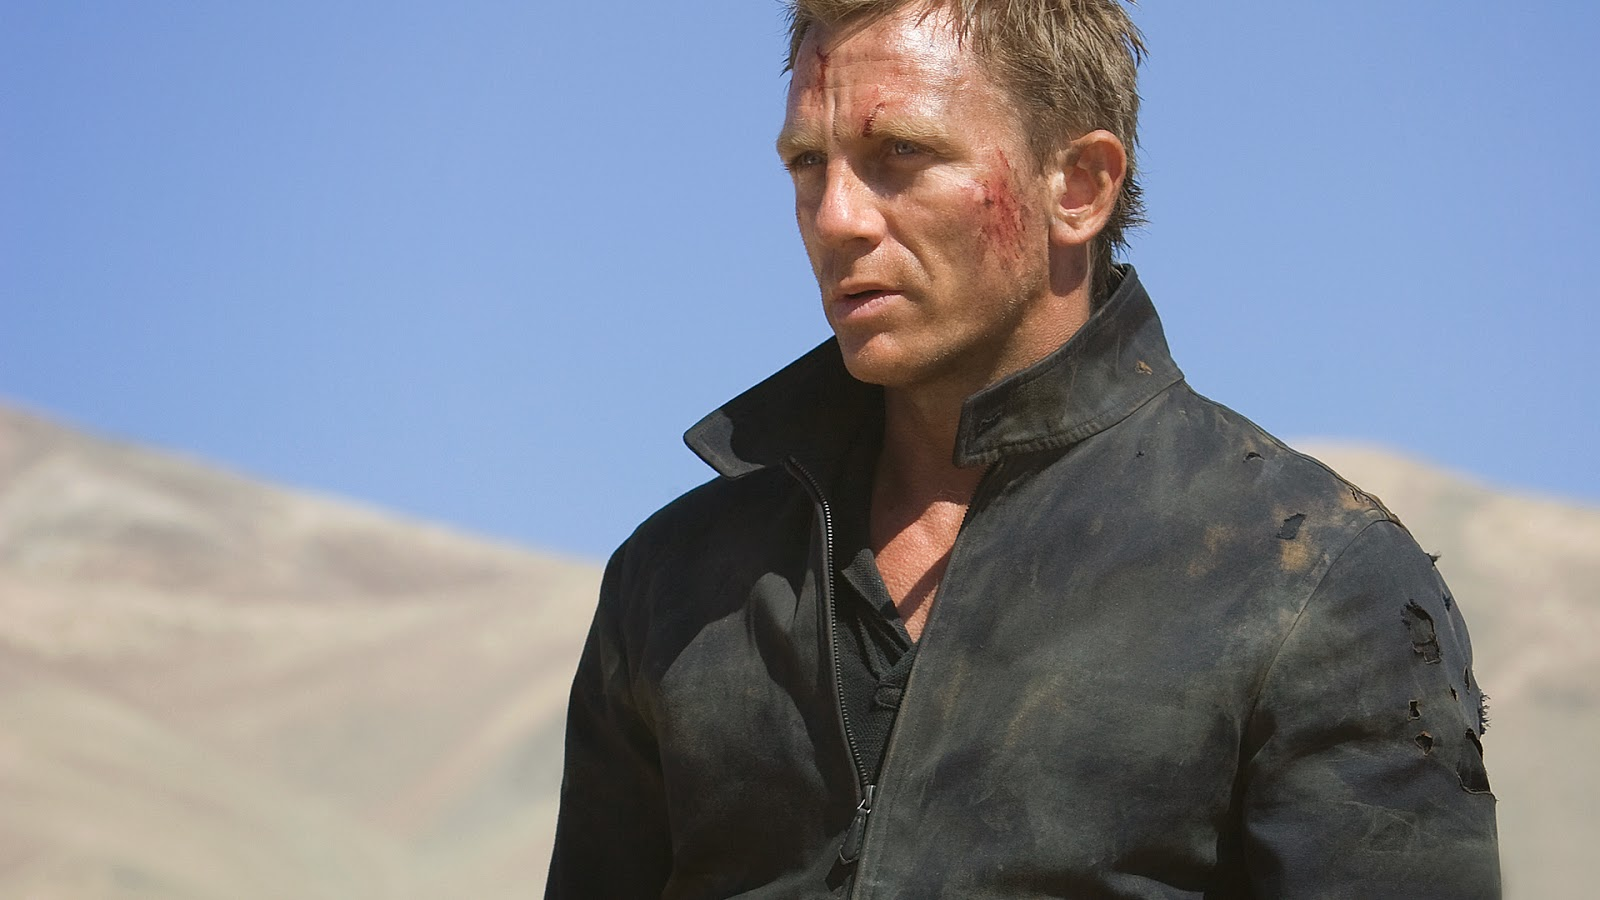 Daniel Craig 007 Wallpaper